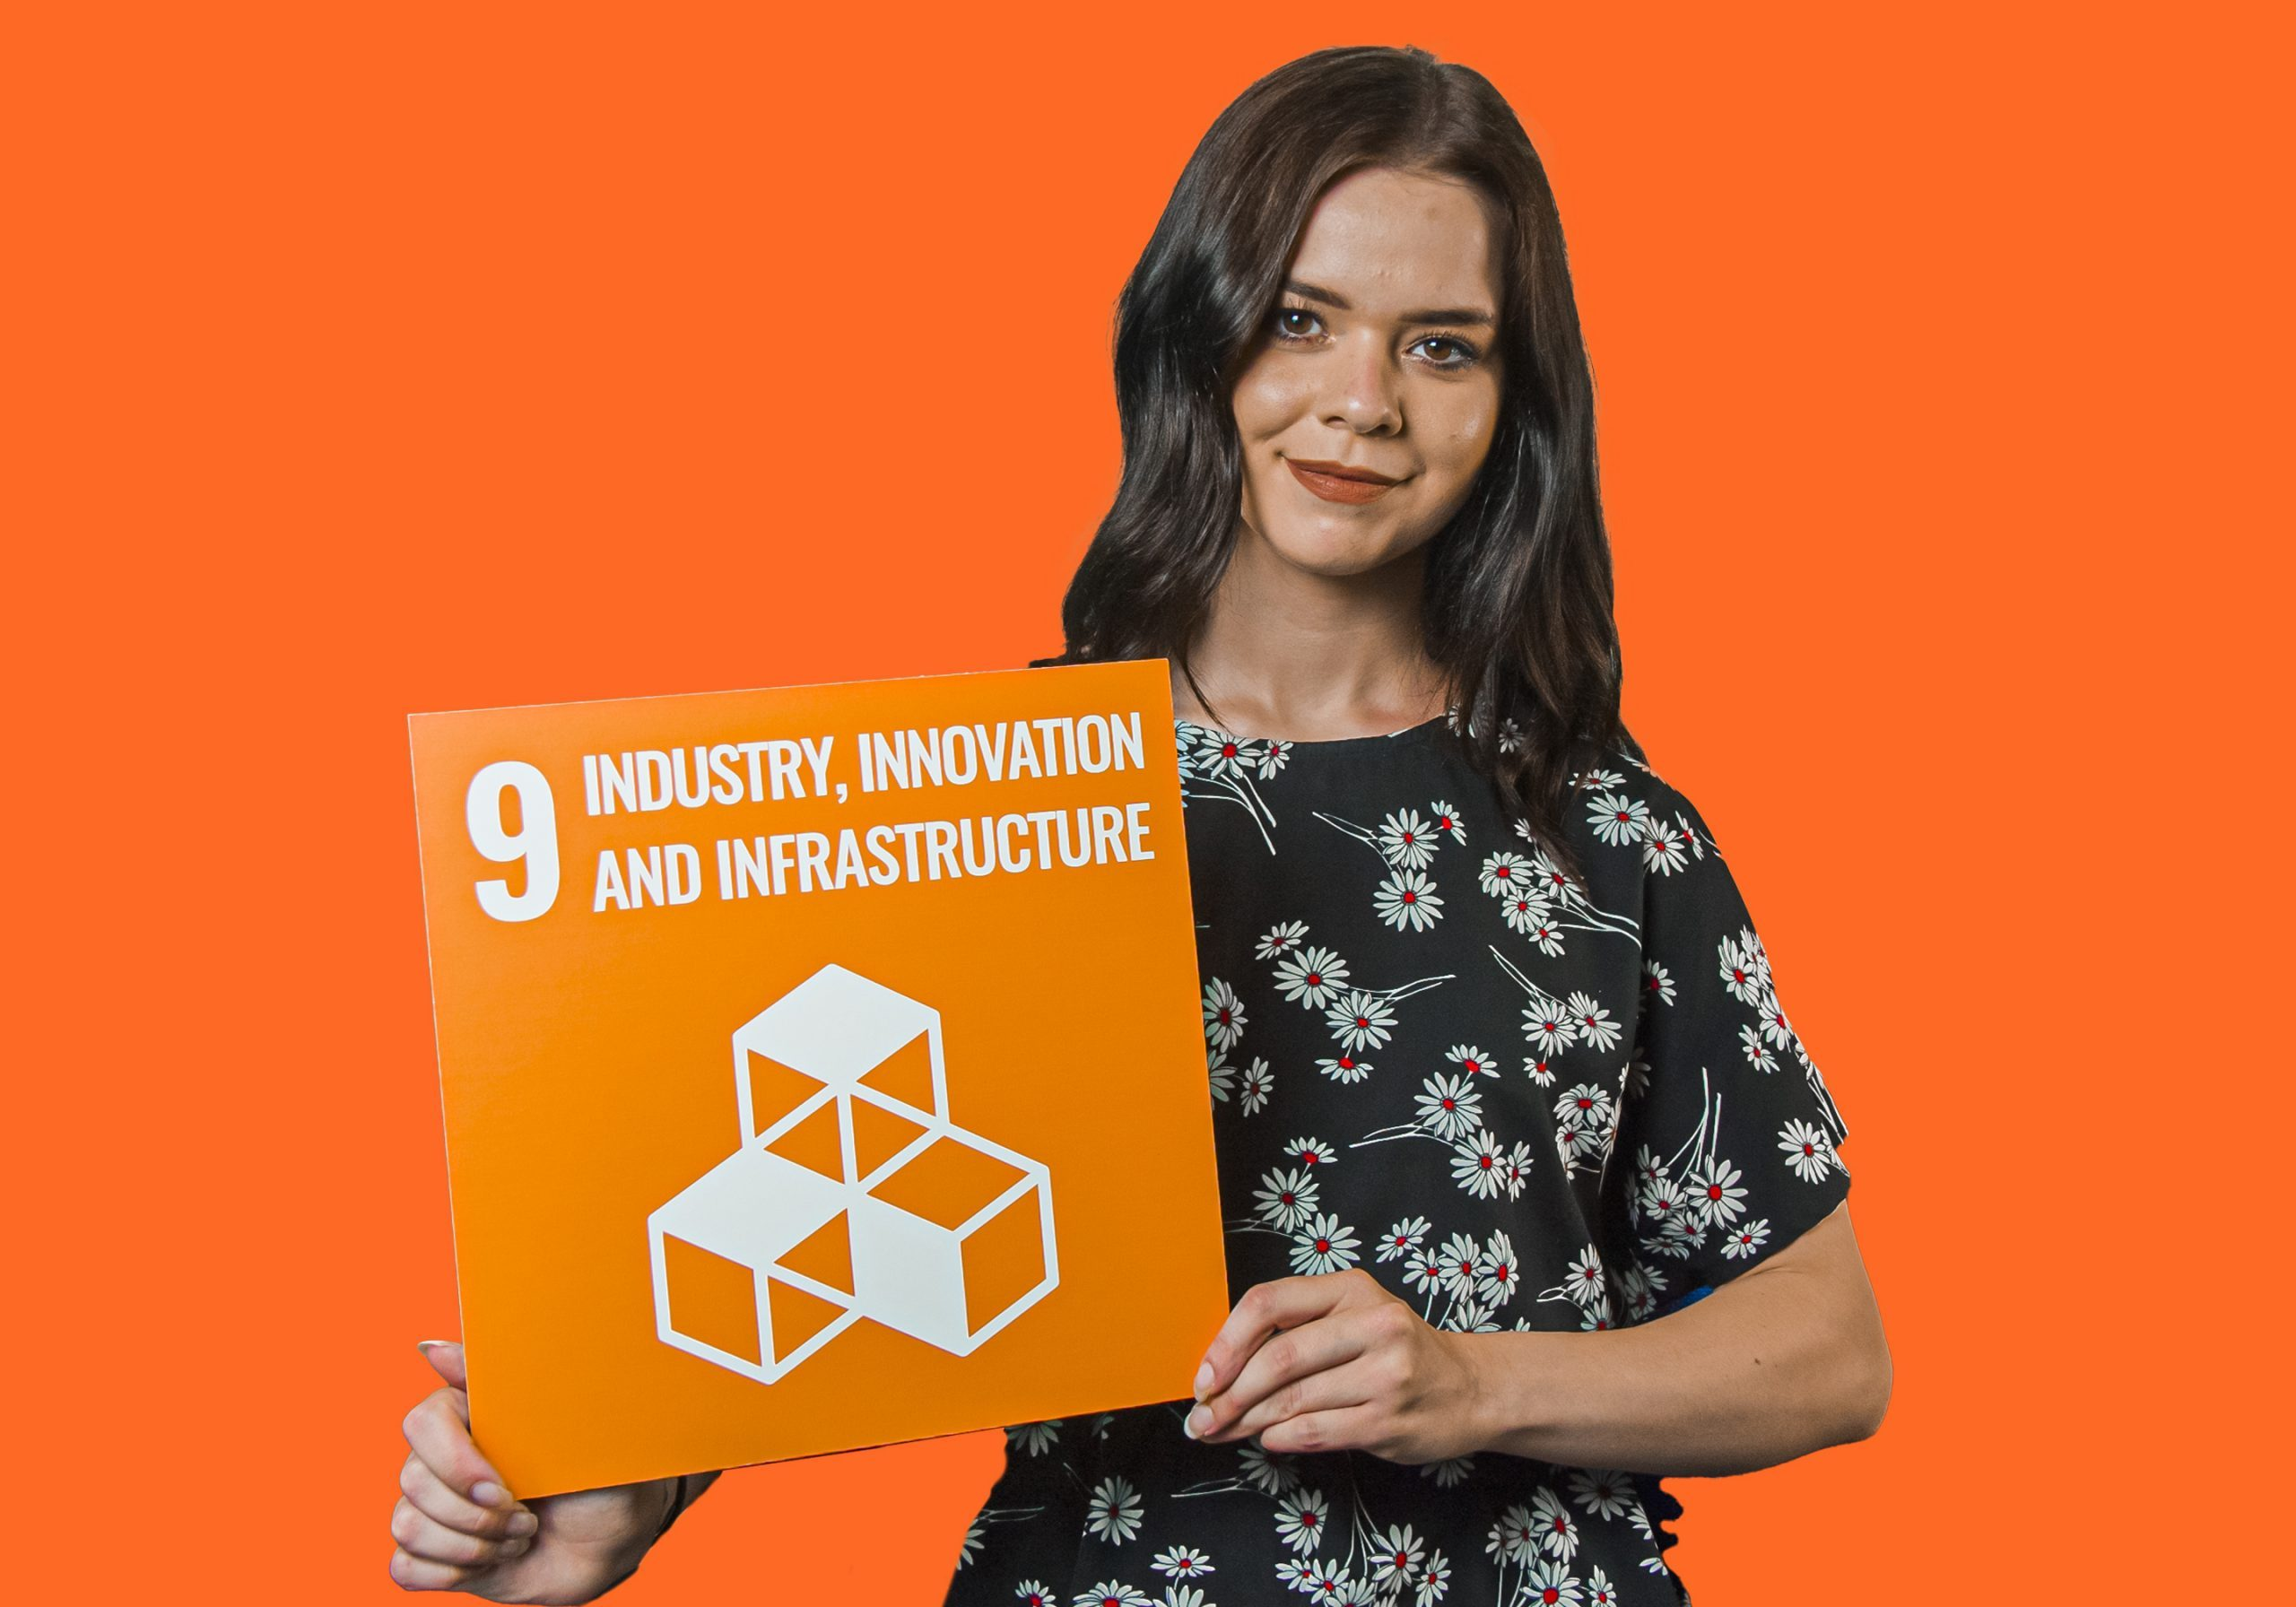 9 - Industry Innovation And Infrastructure